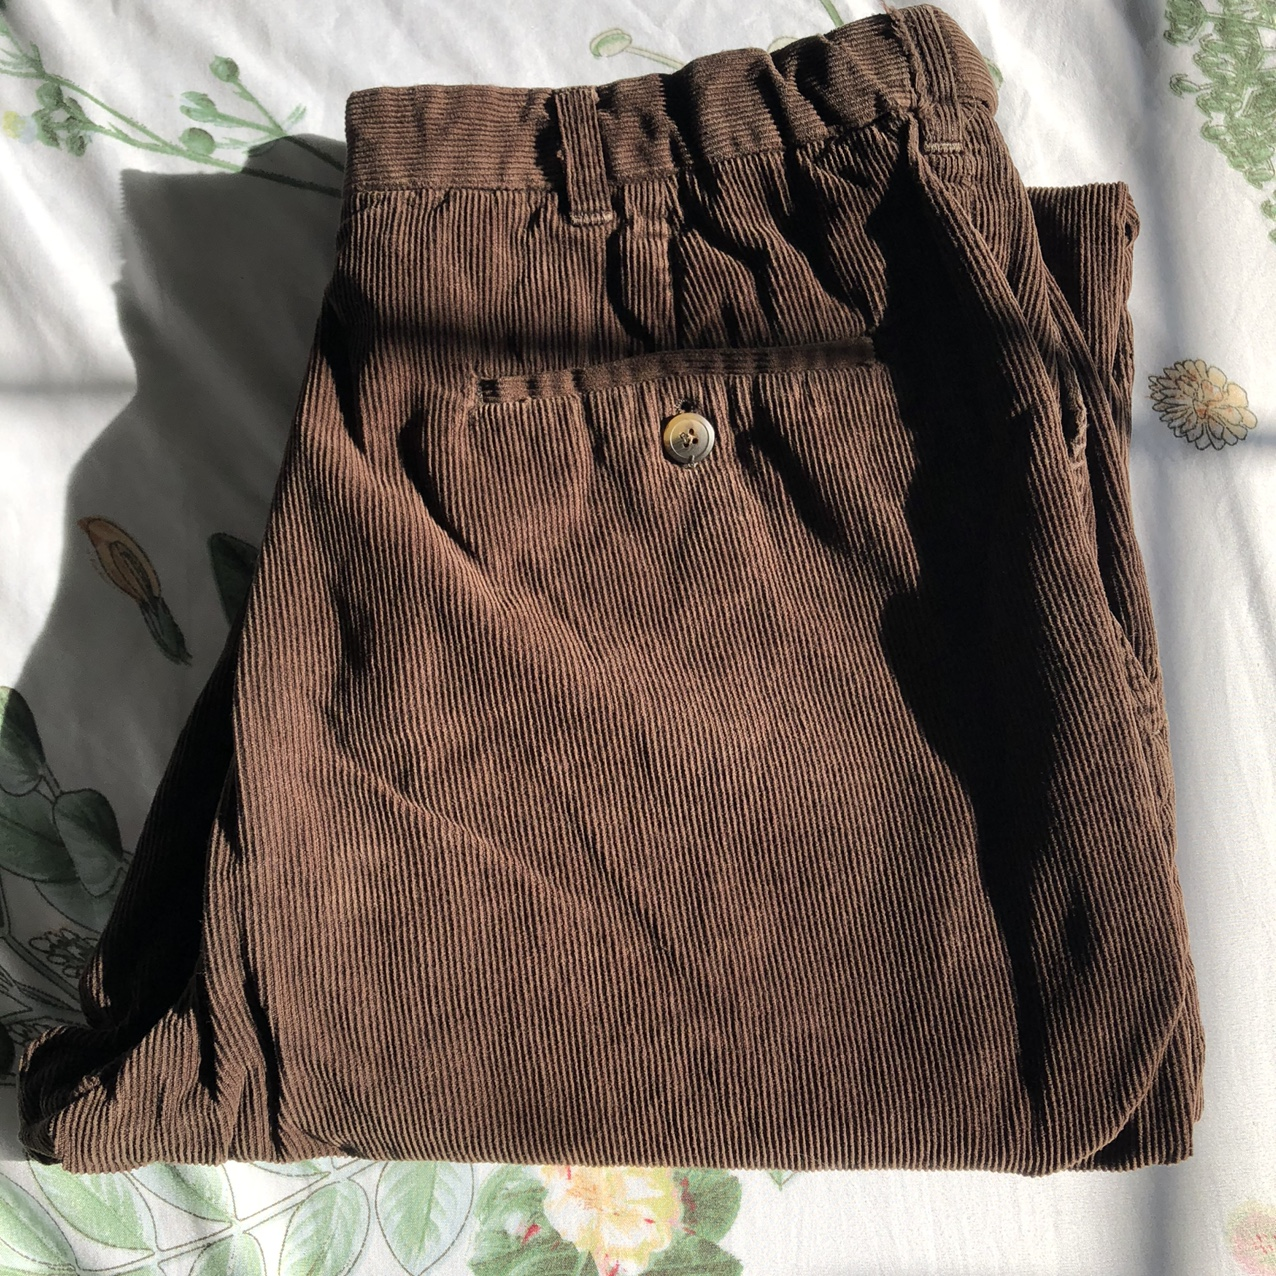 Product Image 1 - Vintage Corduroy Trousers   A nice